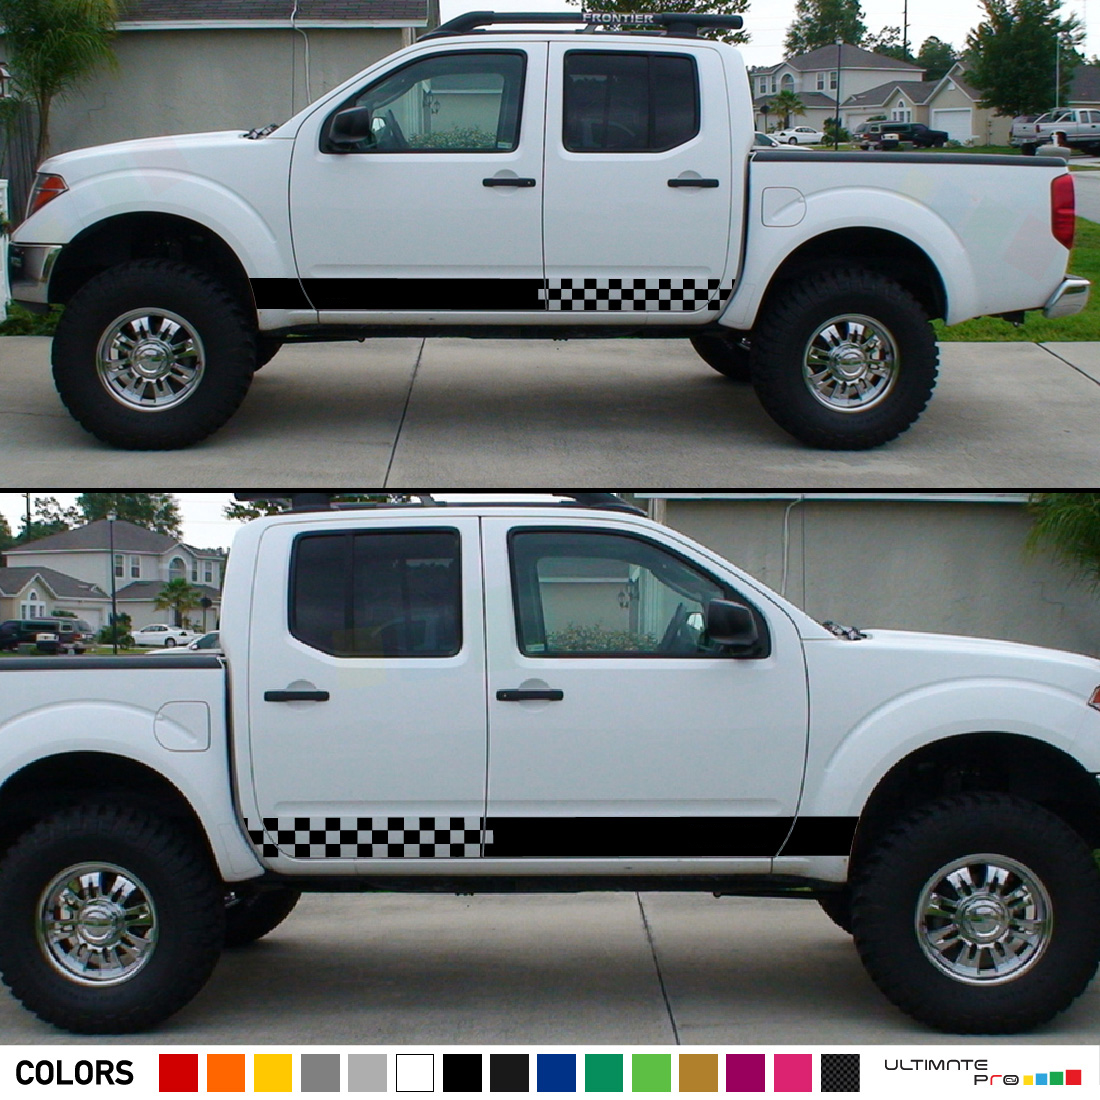 2 X Nissan Navara Side Nismo 4x4 Off Road Decals Stickers Vehicle Parts Accessories Car Tuning Styling